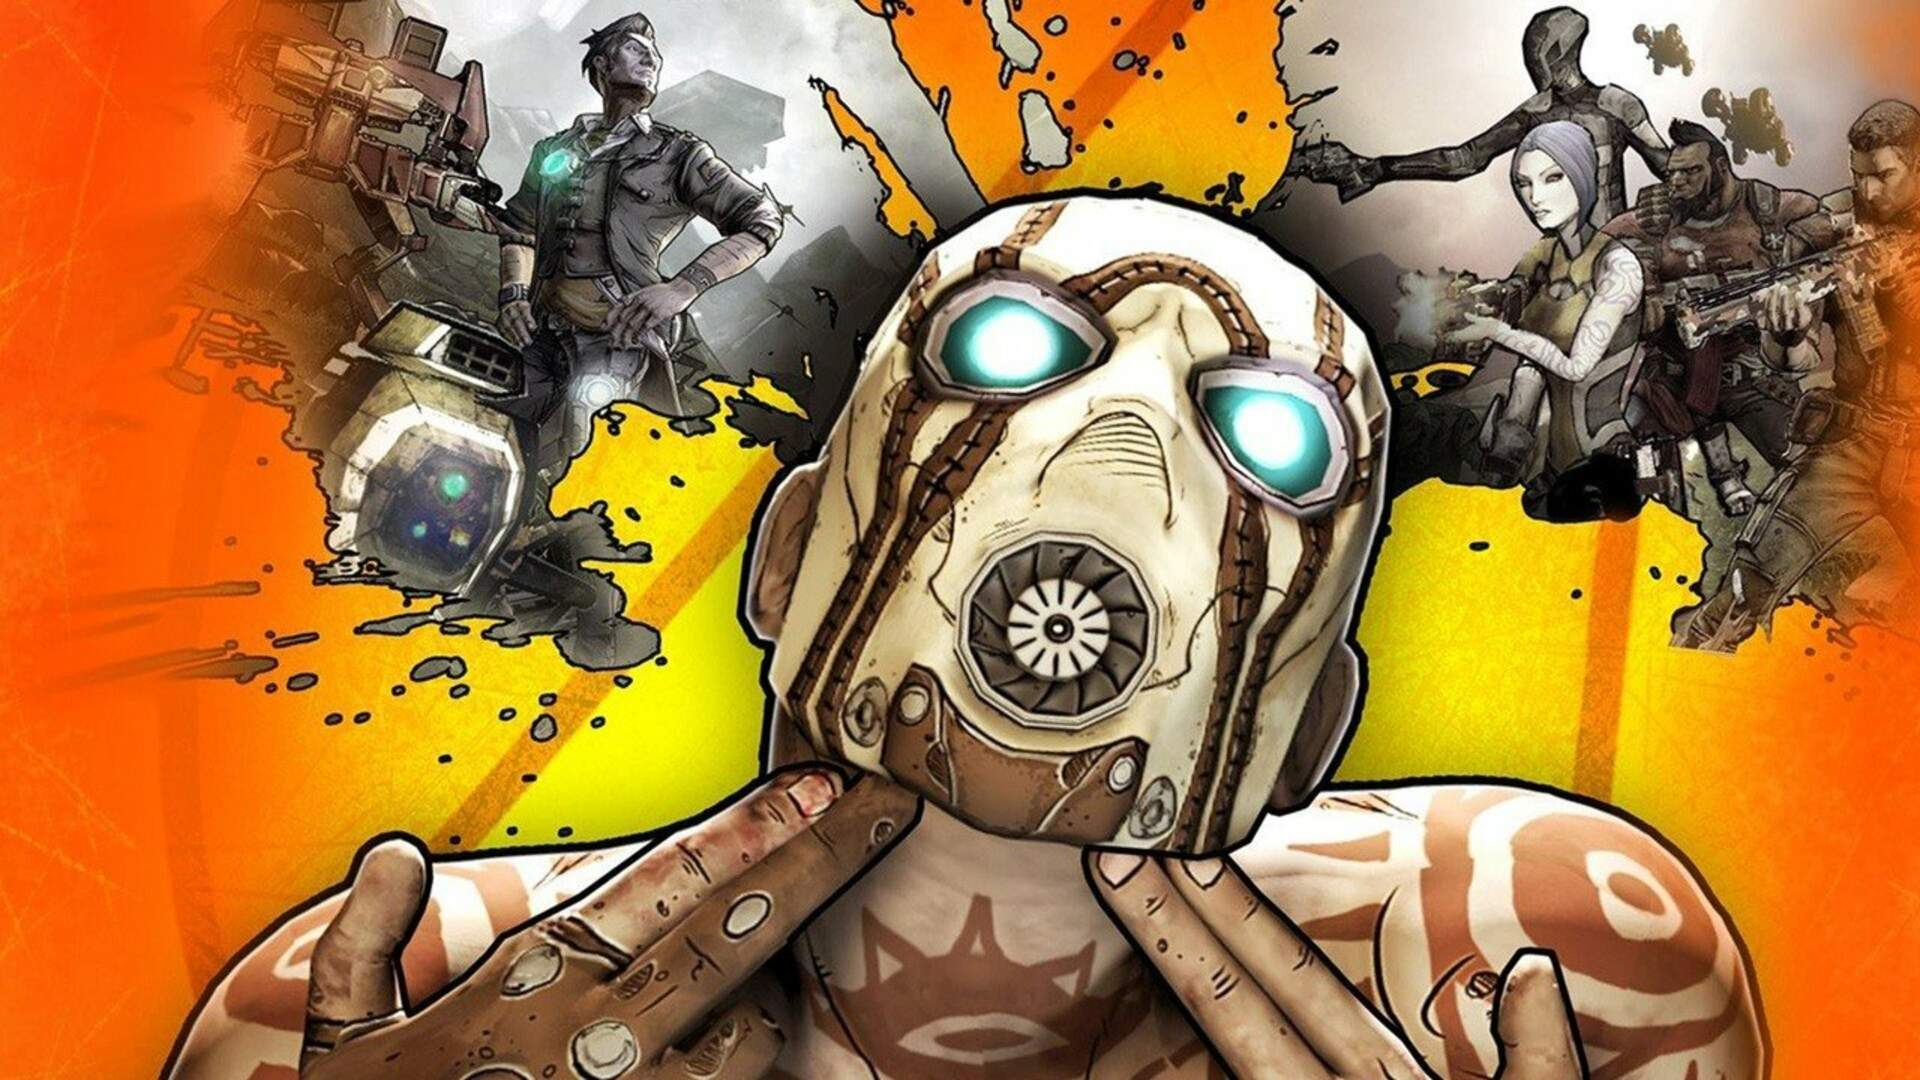 Log Off: A Timeline of Gearbox CEO Randy Pitchford's Many Dramas